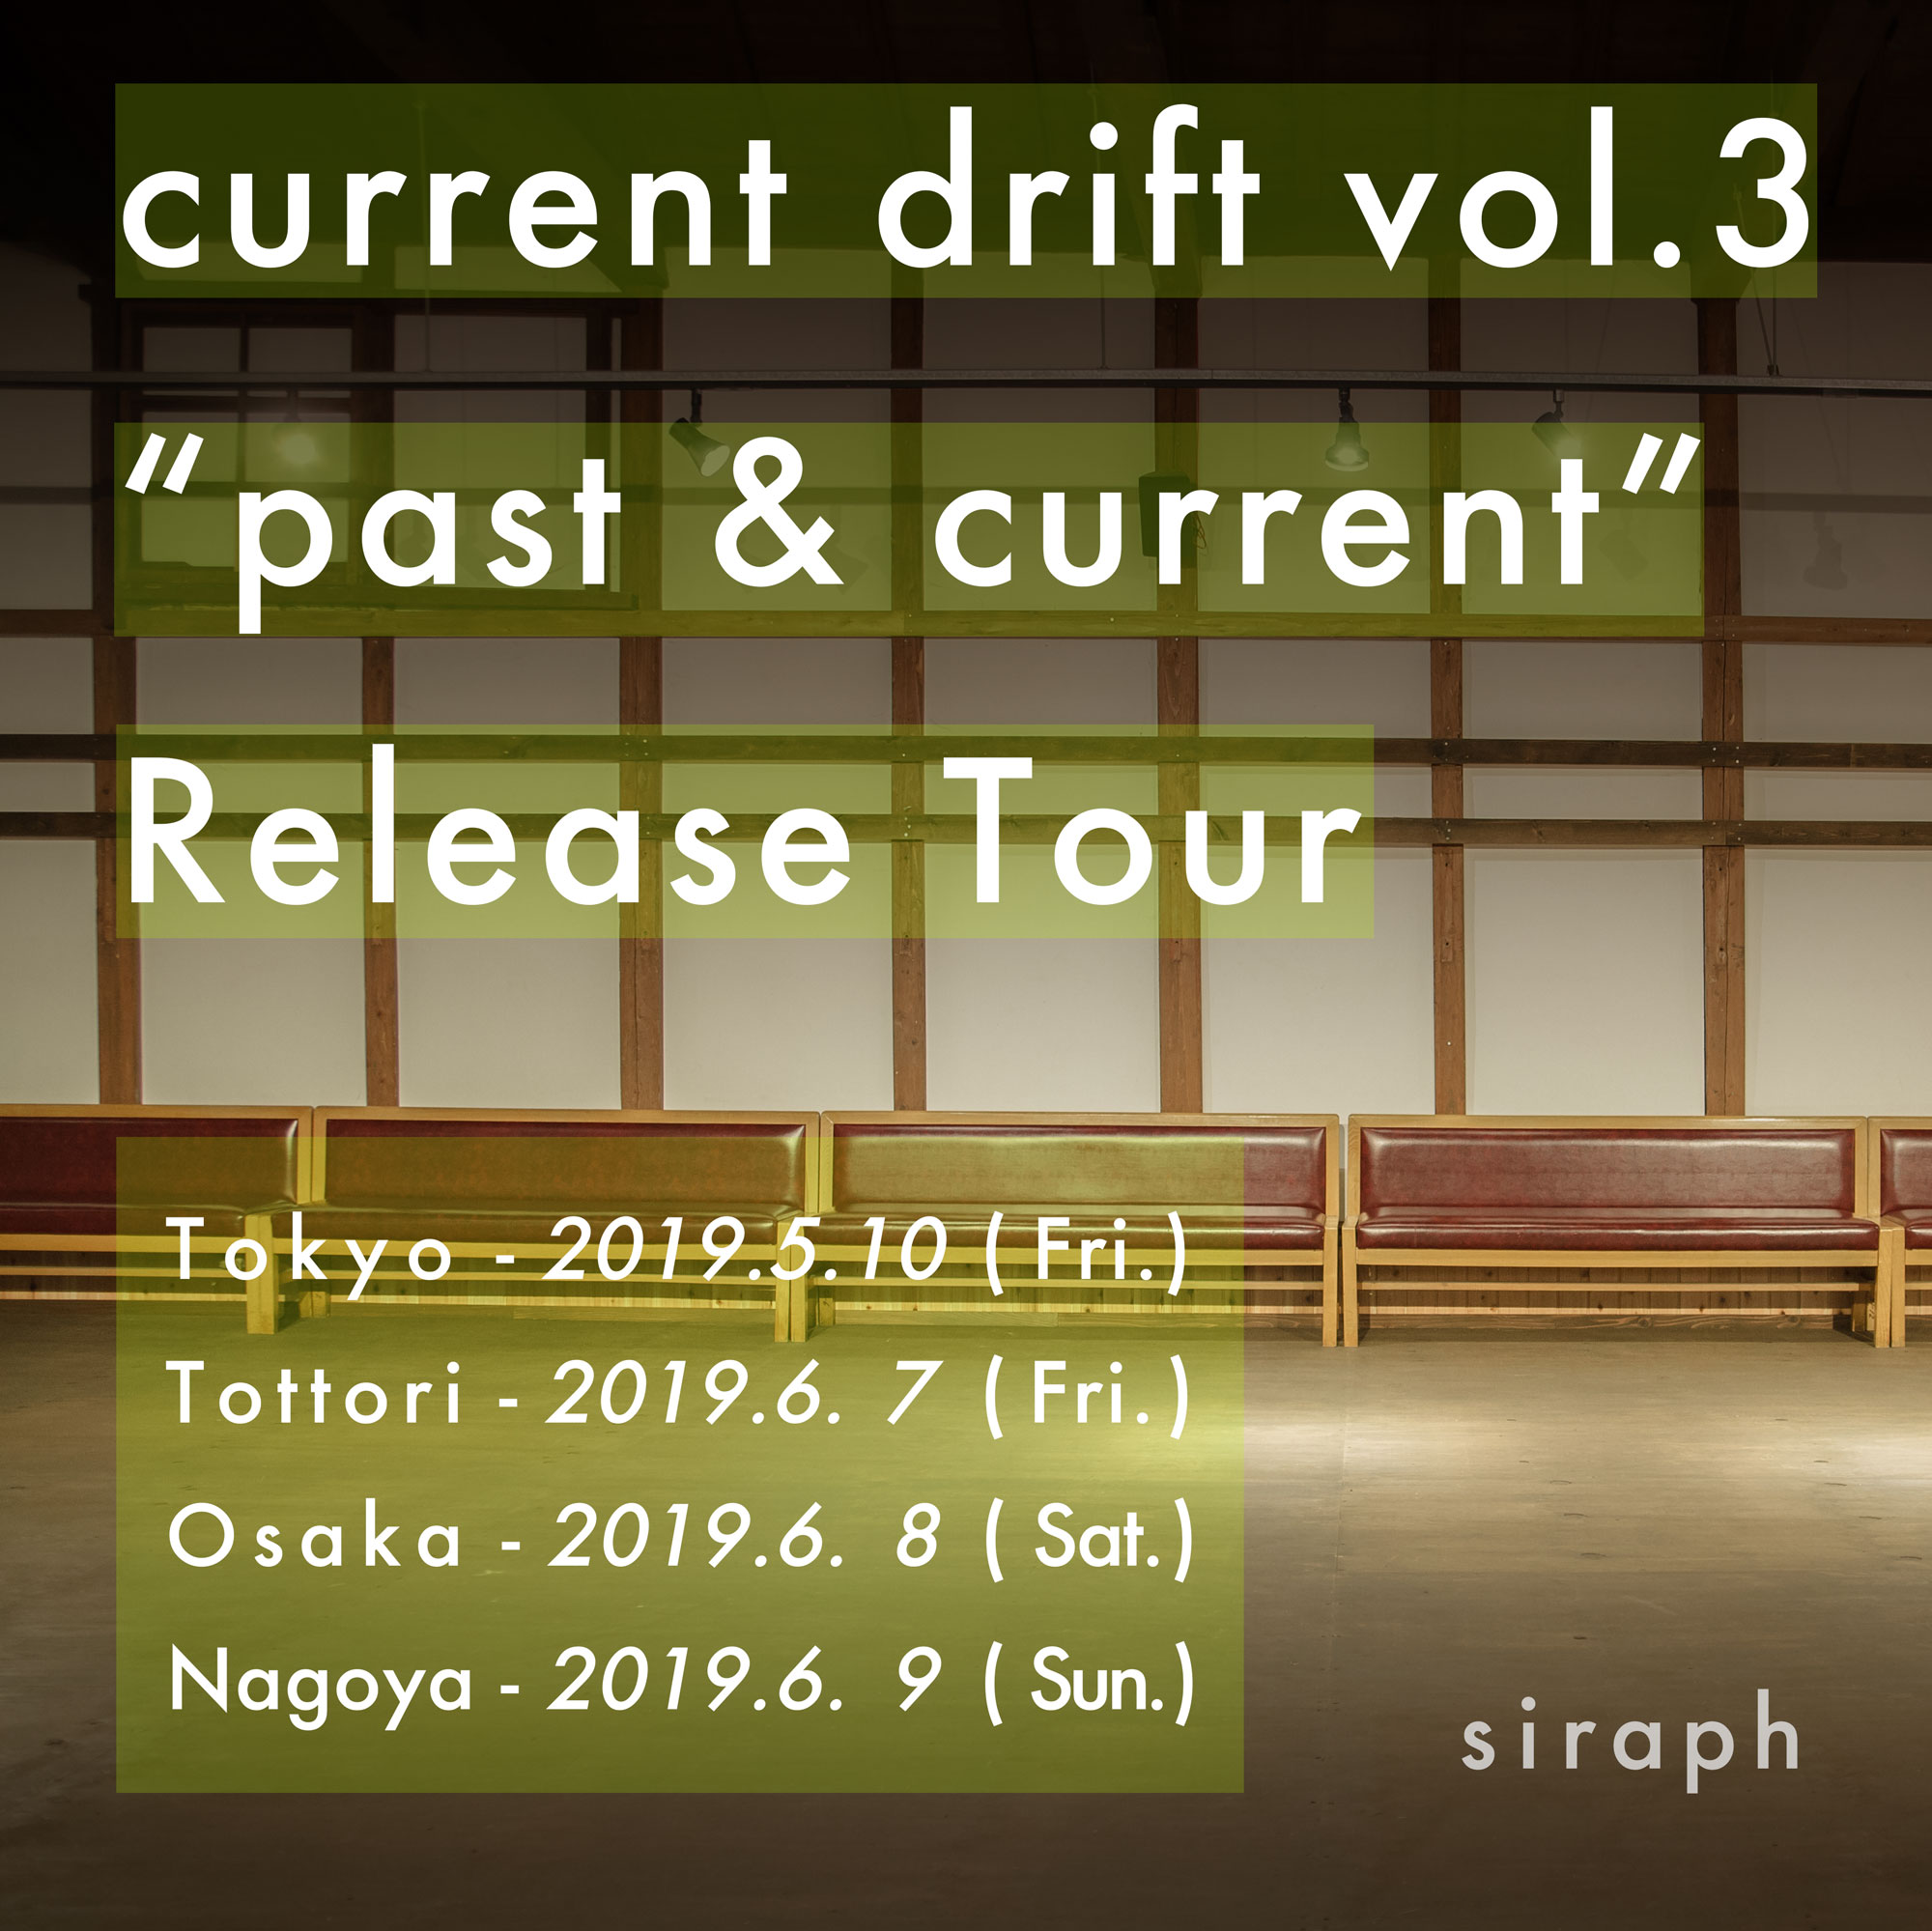 "current drift vol.3 - ""past & current"" Release Tour 大阪編 -"